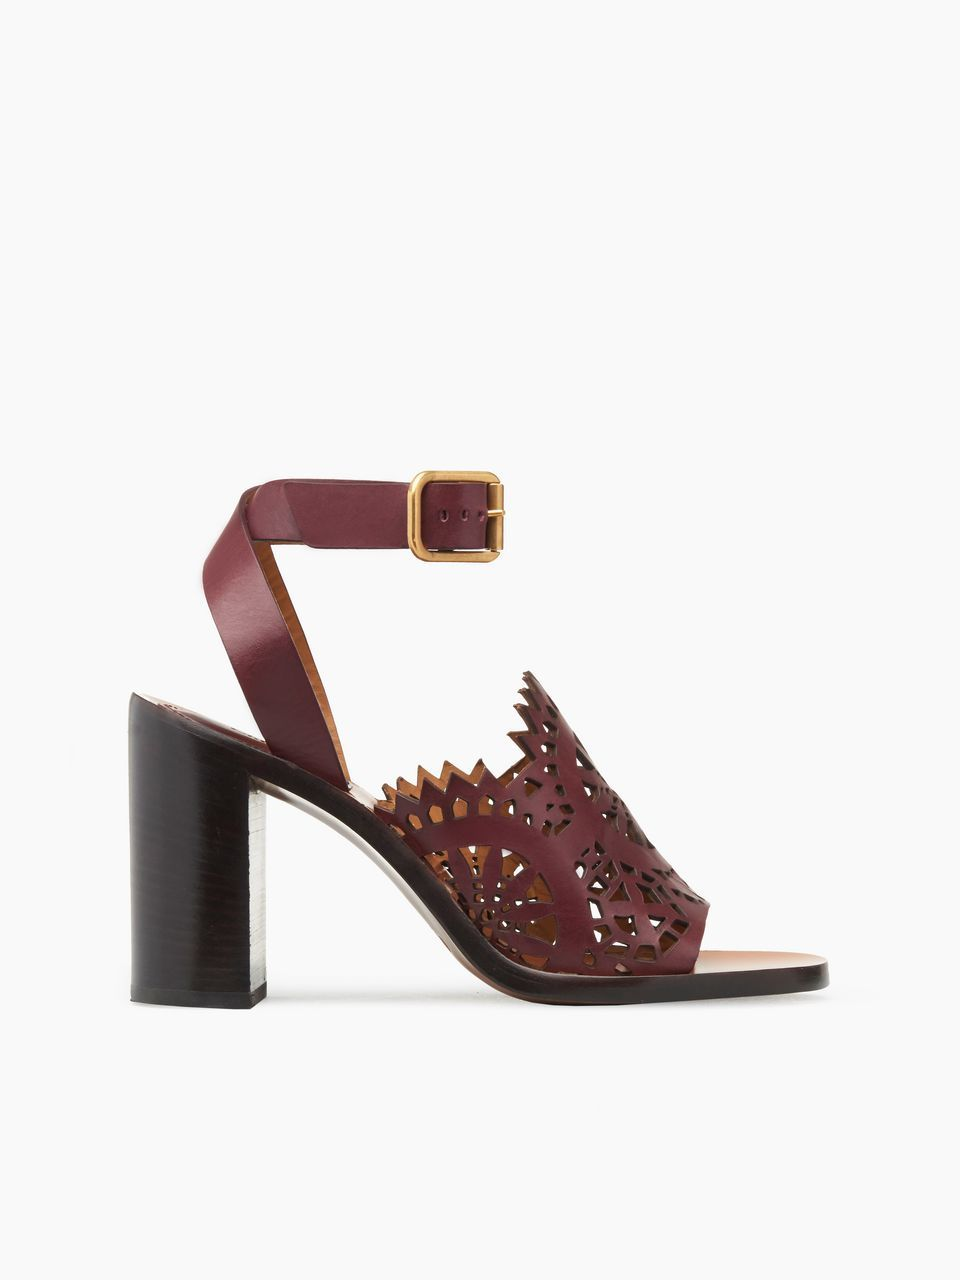 18d94164cc6d ... women on our Online Shop. Chloé Kelby sandal in vegetal calfskin from  the Fall 2016 collection